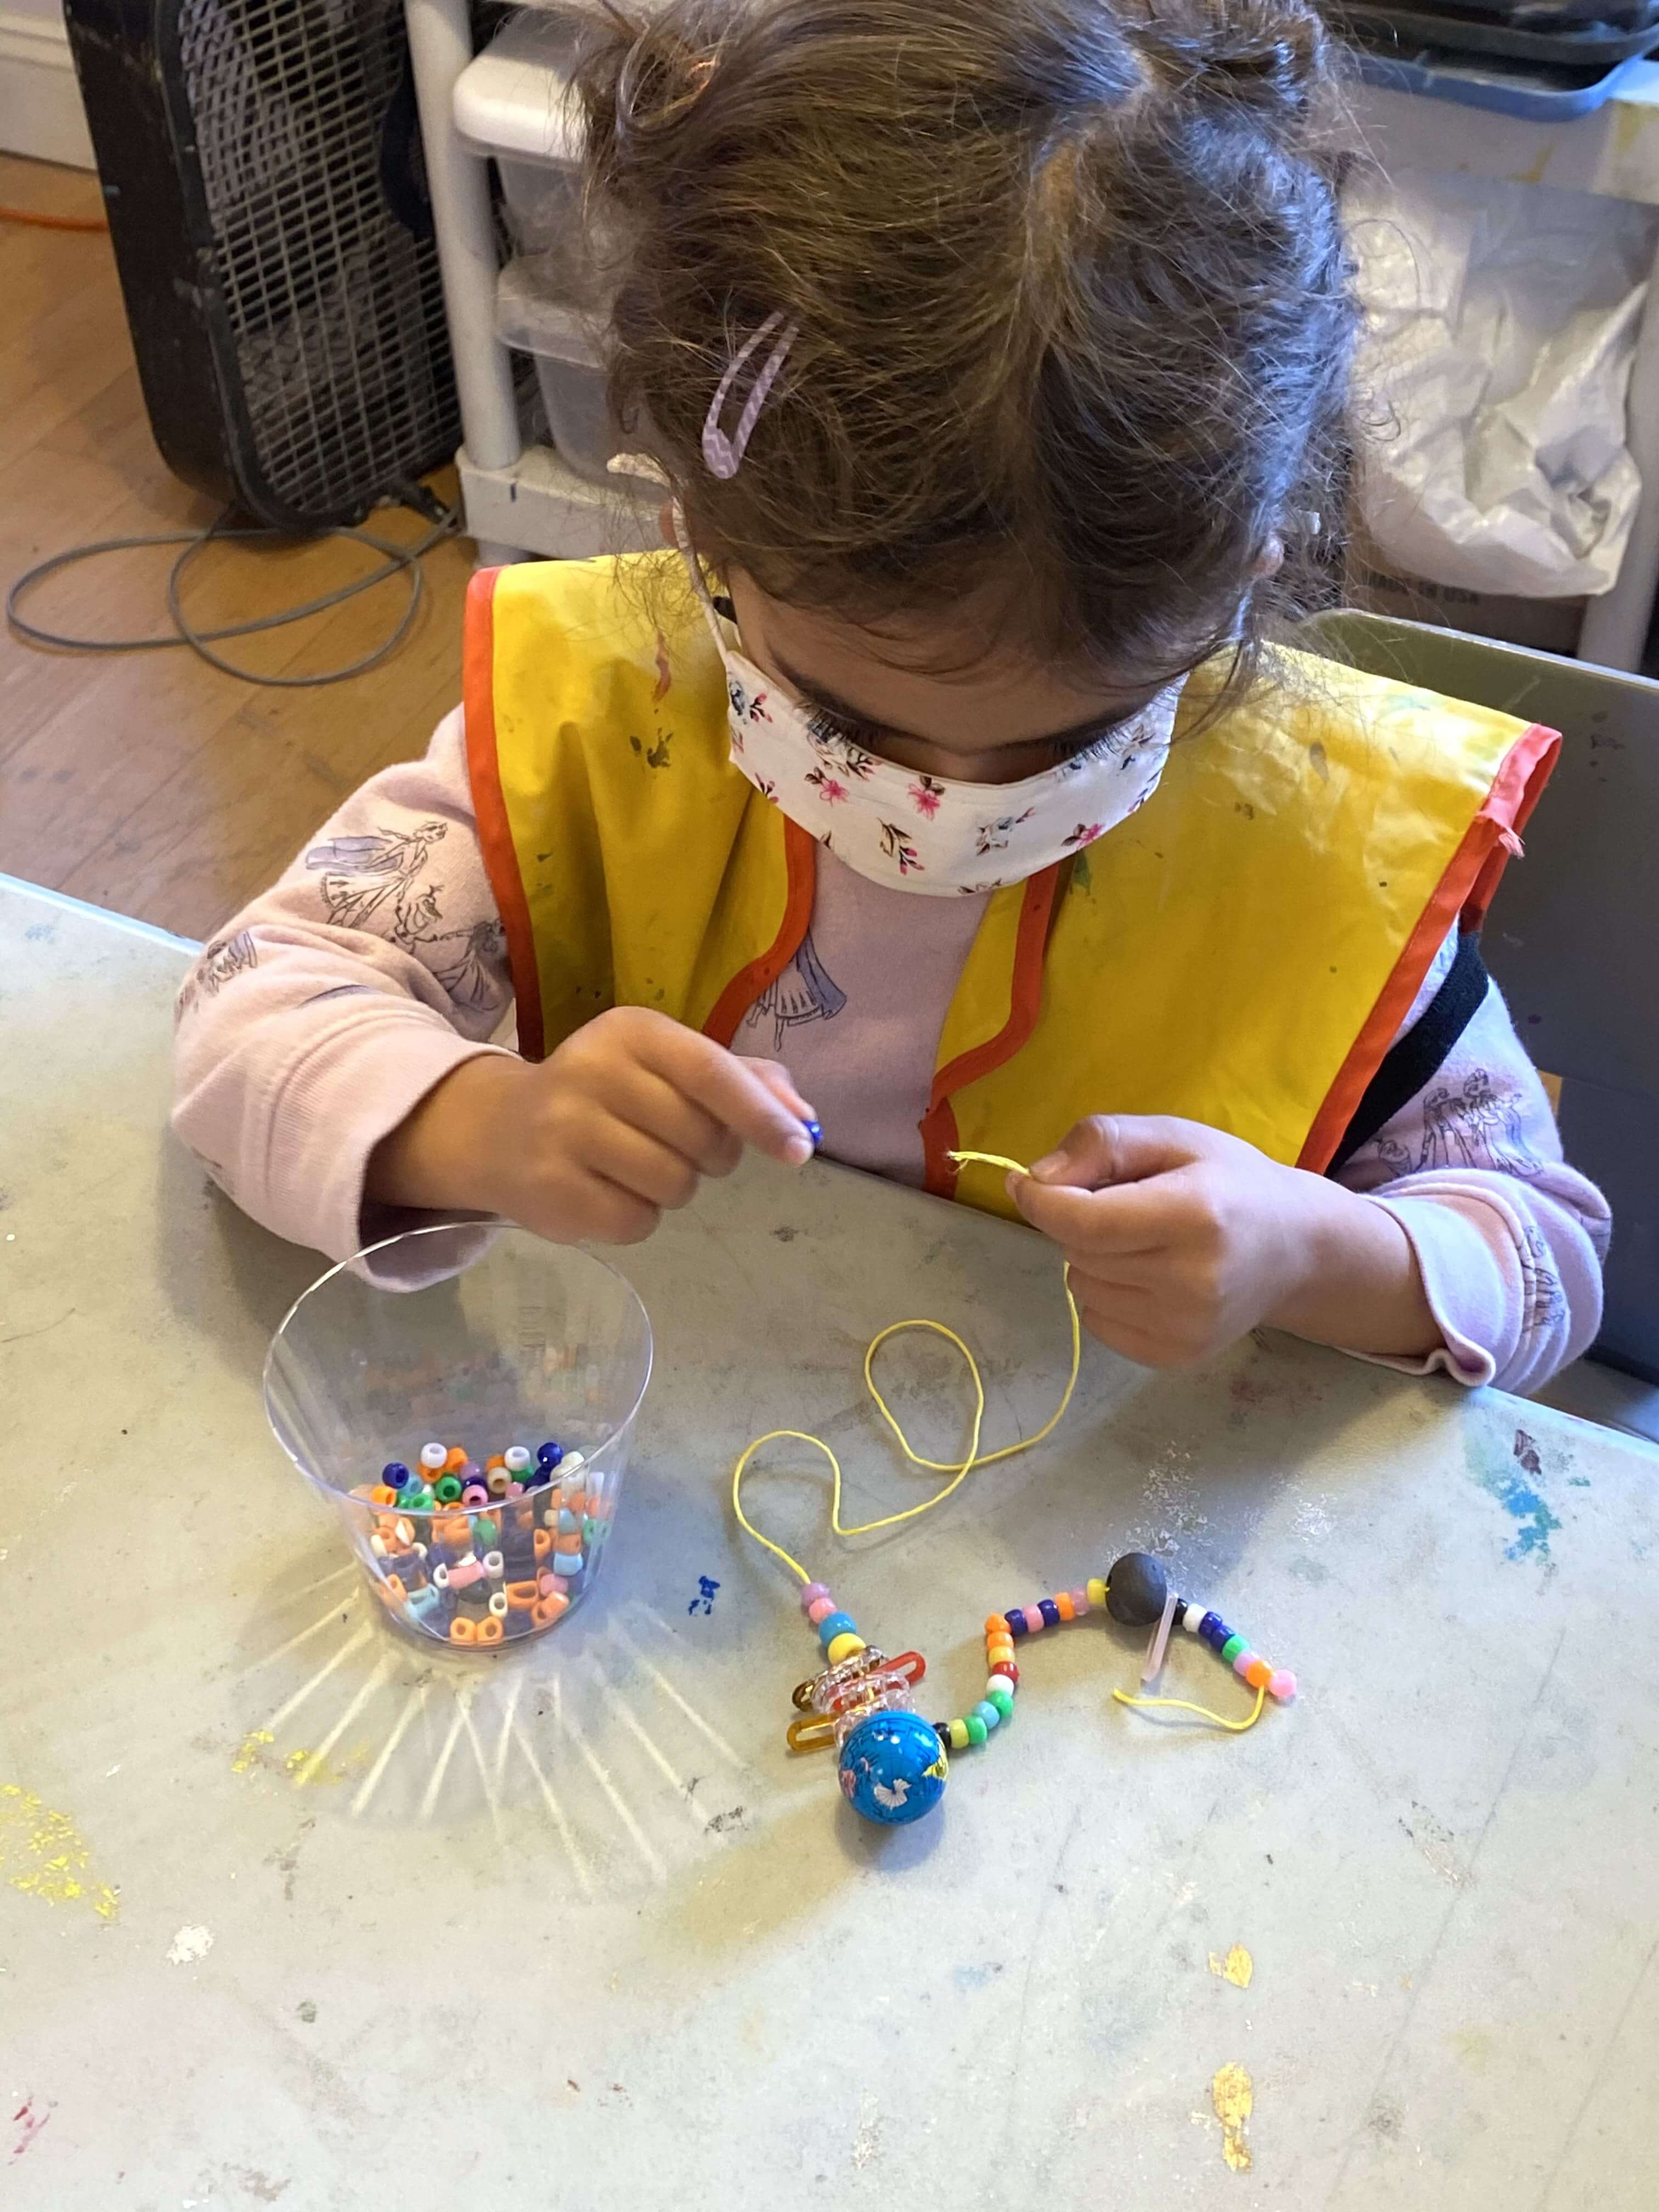 A picture of a girl making a necklace